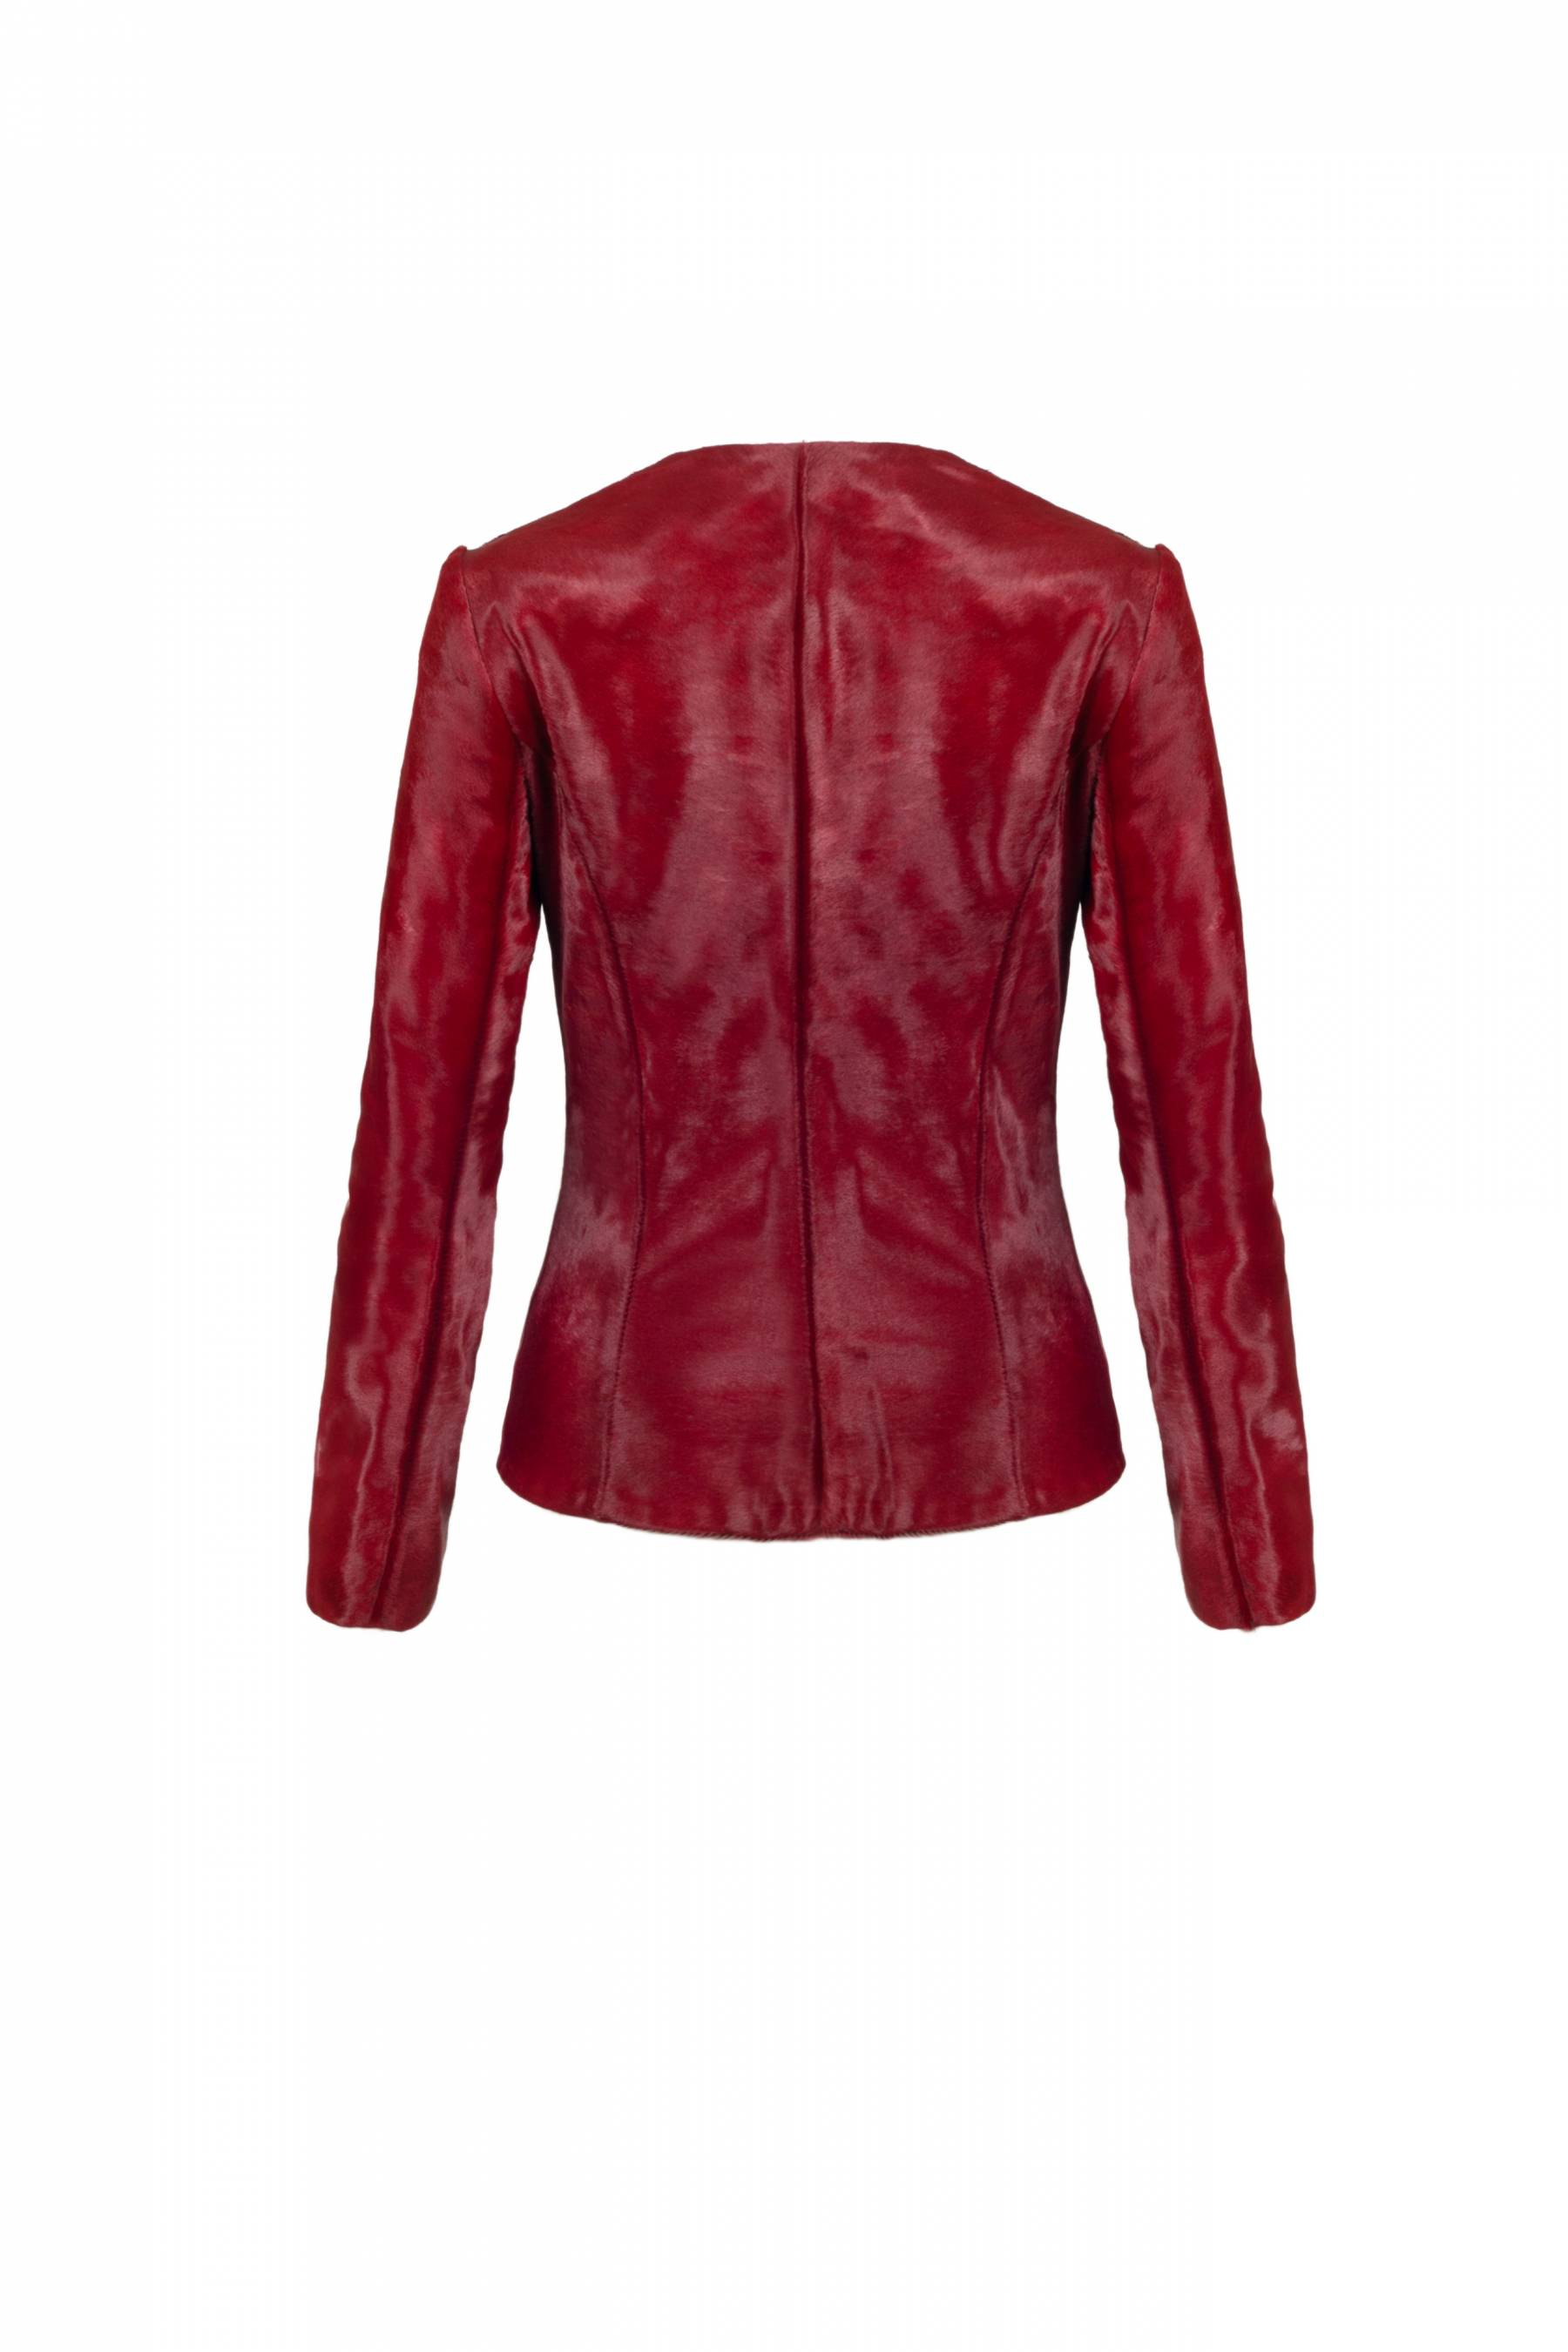 Red bomber Jacket1